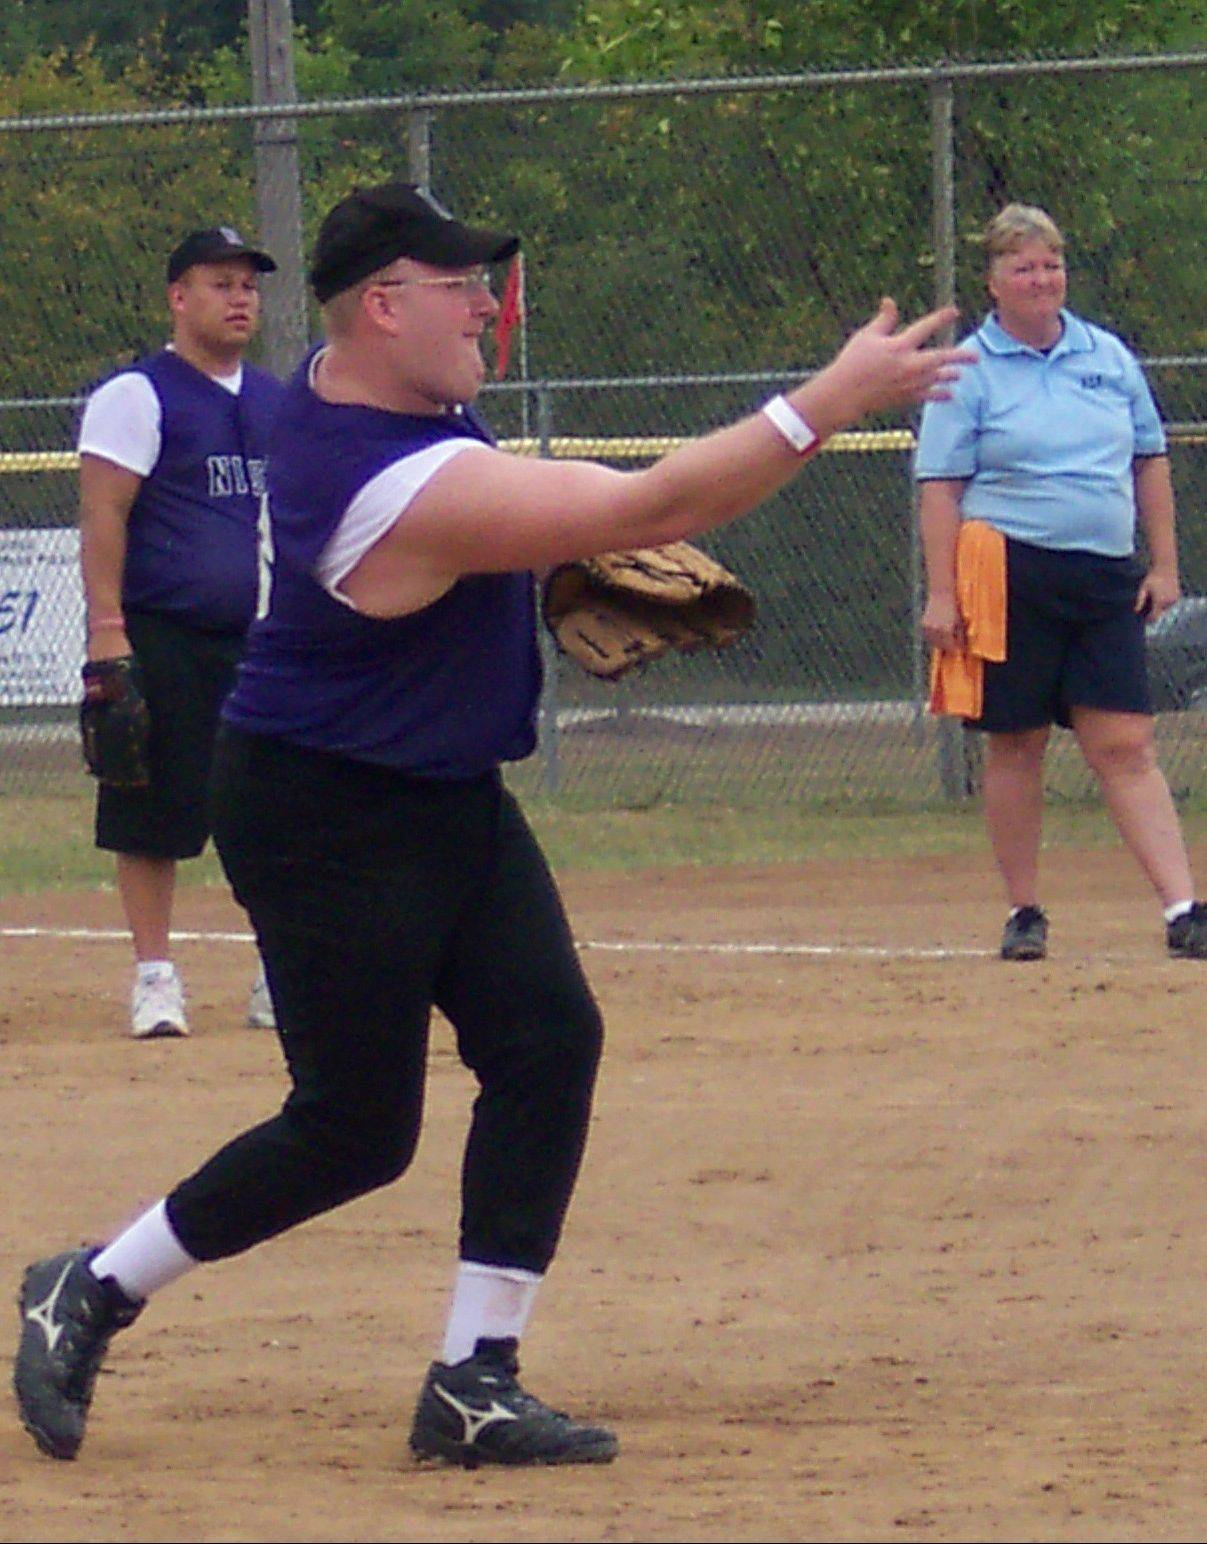 NISRA softball player James Williams practices, with fellow player Rob Michalik in the back ground. The two will participate in the Special Olympics National Invitational Softball Tournament this weekend Aug. 27-28 in Elgin.